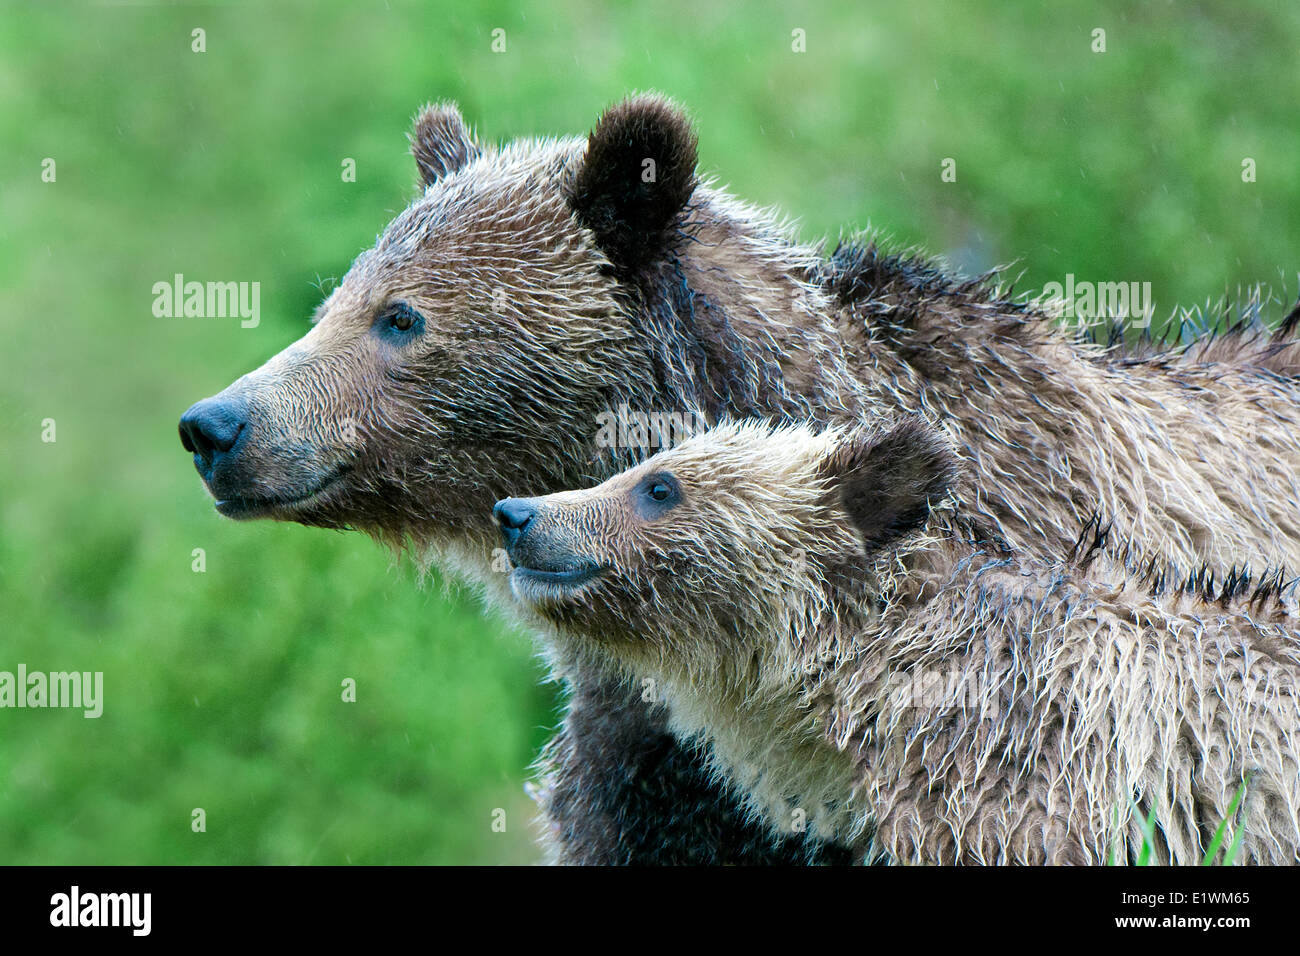 Mother grizzly bear (Ursus arctos) and yearling cub, Rocky Mountain foothills, western Alberta, Canada Stock Photo